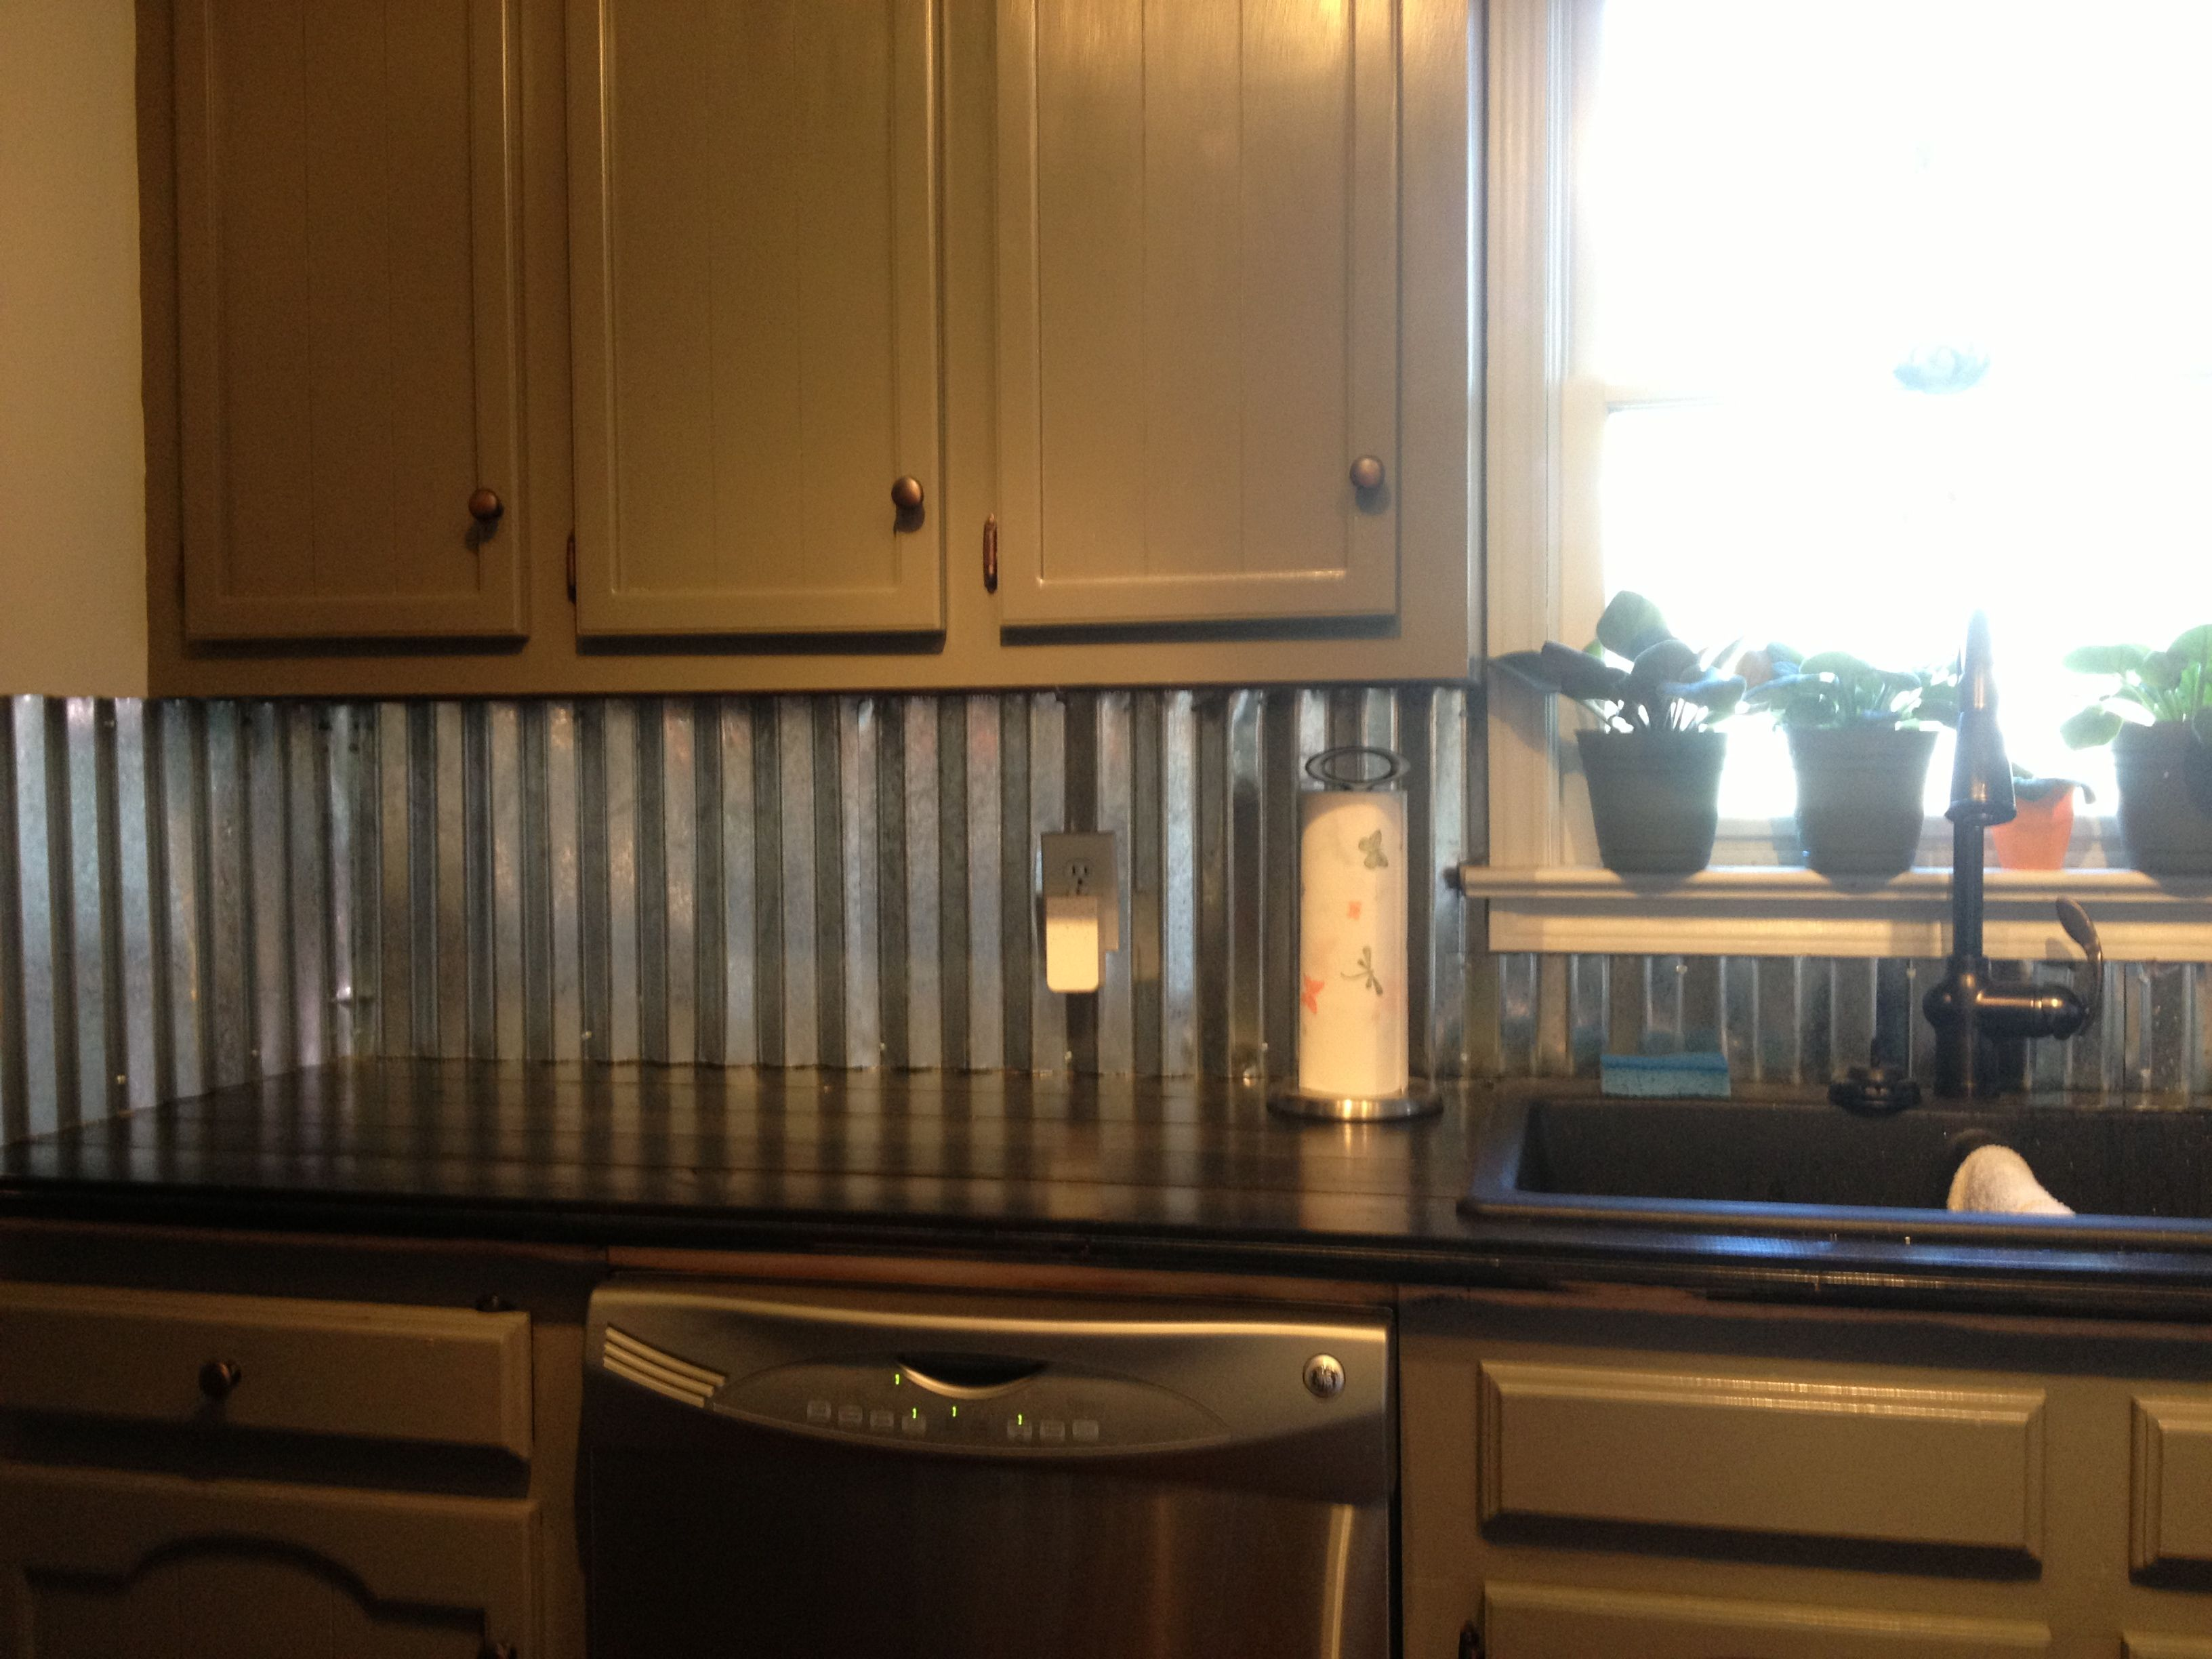 Corrugated Metal Backsplash Home Kitchen Backsplash Home Decor